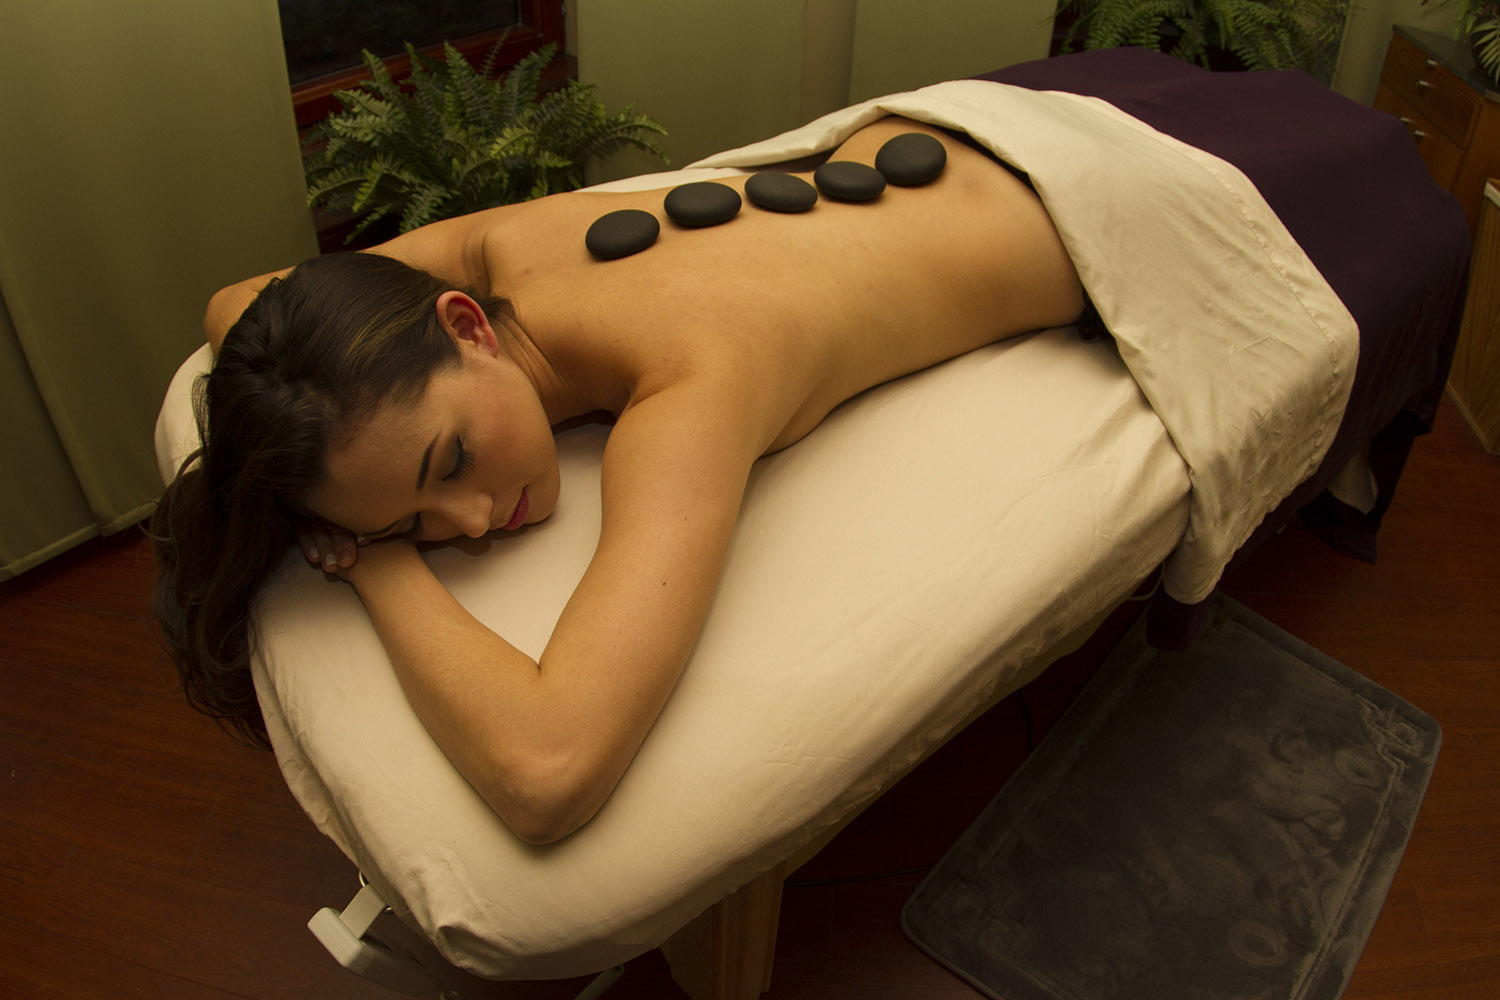 The spa offers a variety of healing treatments, including an 80-minute Hot Stone Massage.